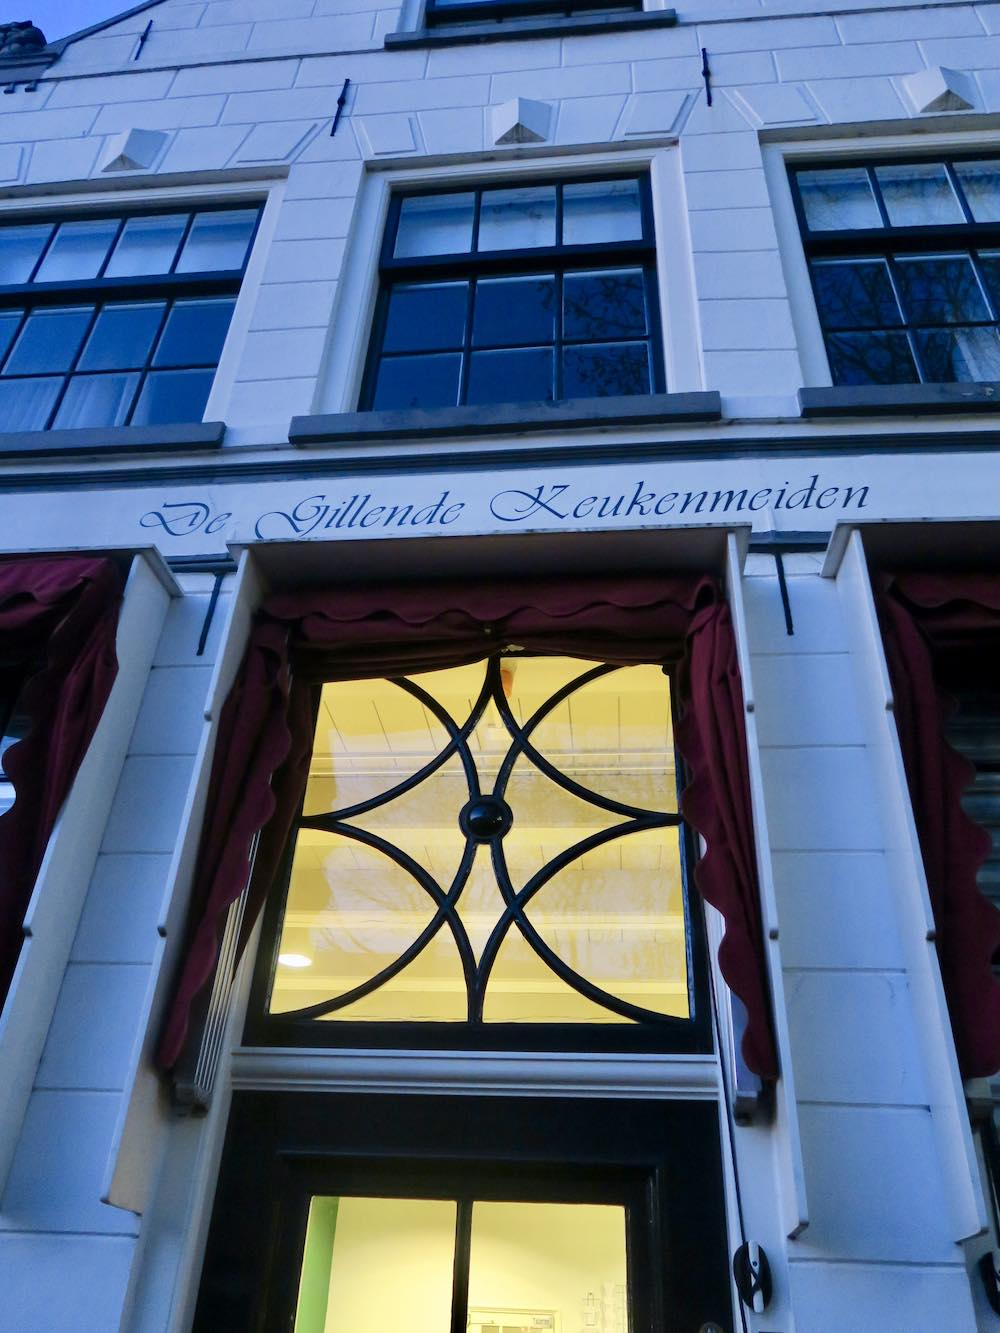 Gillende Keukenmeiden in Zwolle; retail and food and beverage |curlytraveller.com